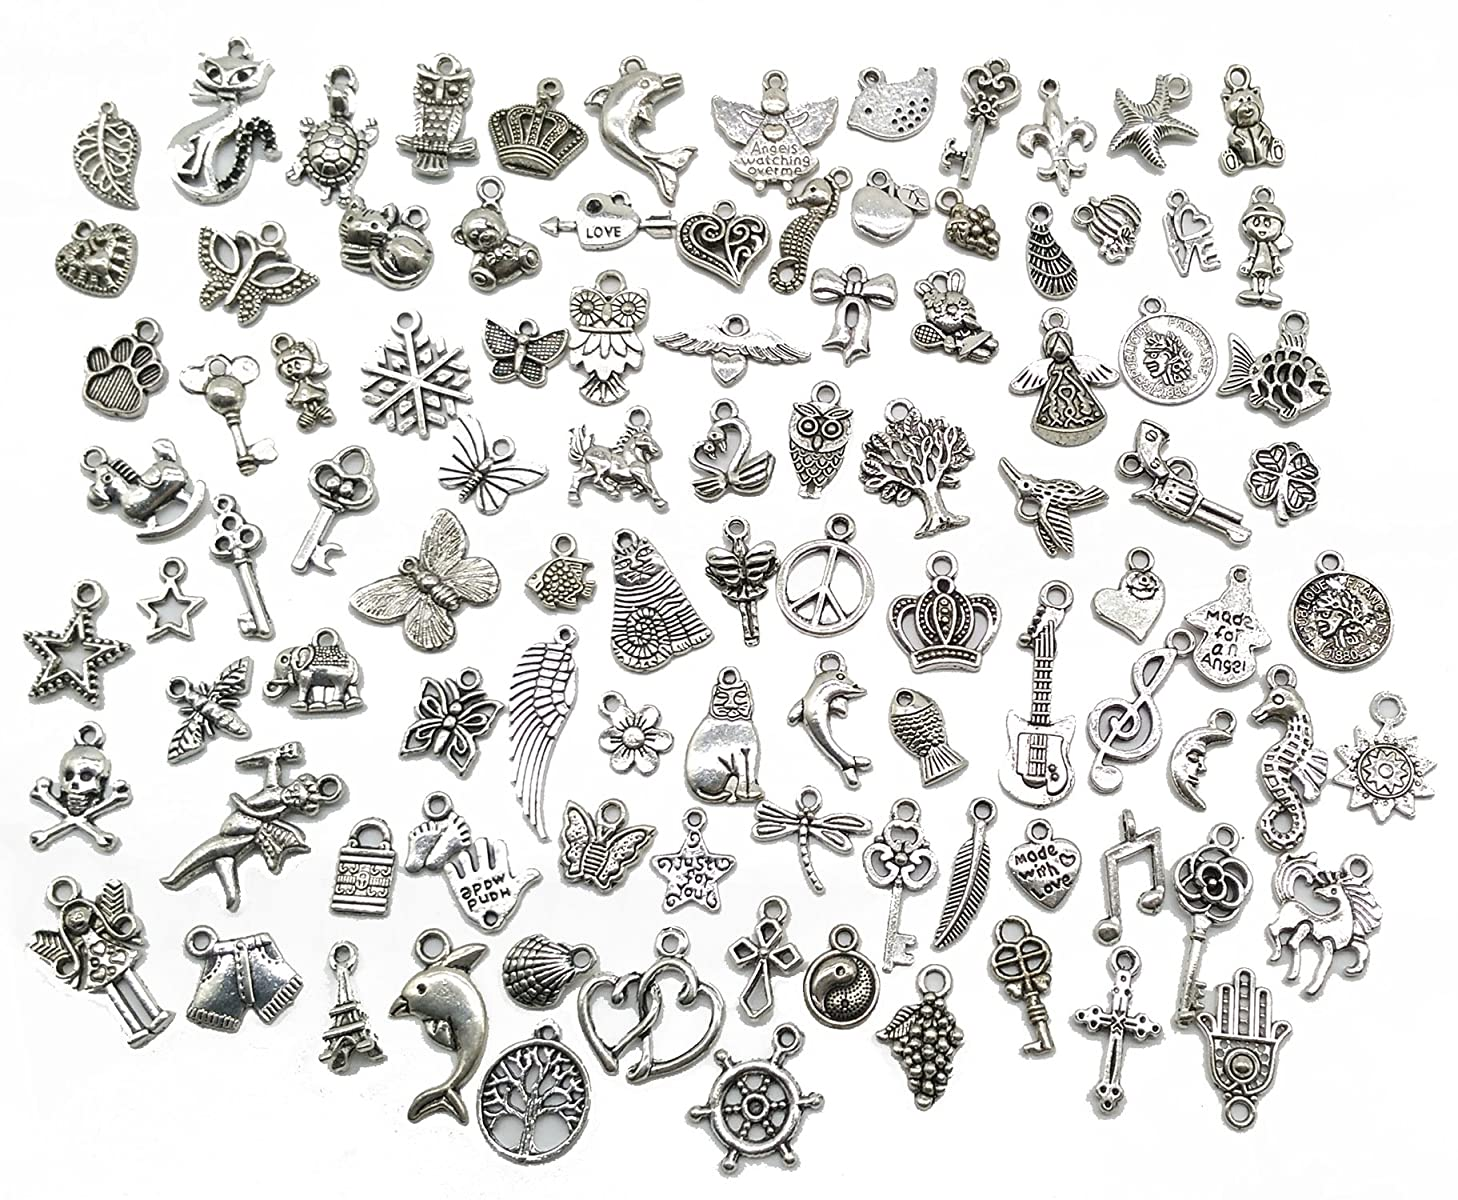 Pack of 100 Mixed DIY Antique Pendants Charms for Crafting,Bracelet Necklace Jewelry Findings Jewelry Making Accessory